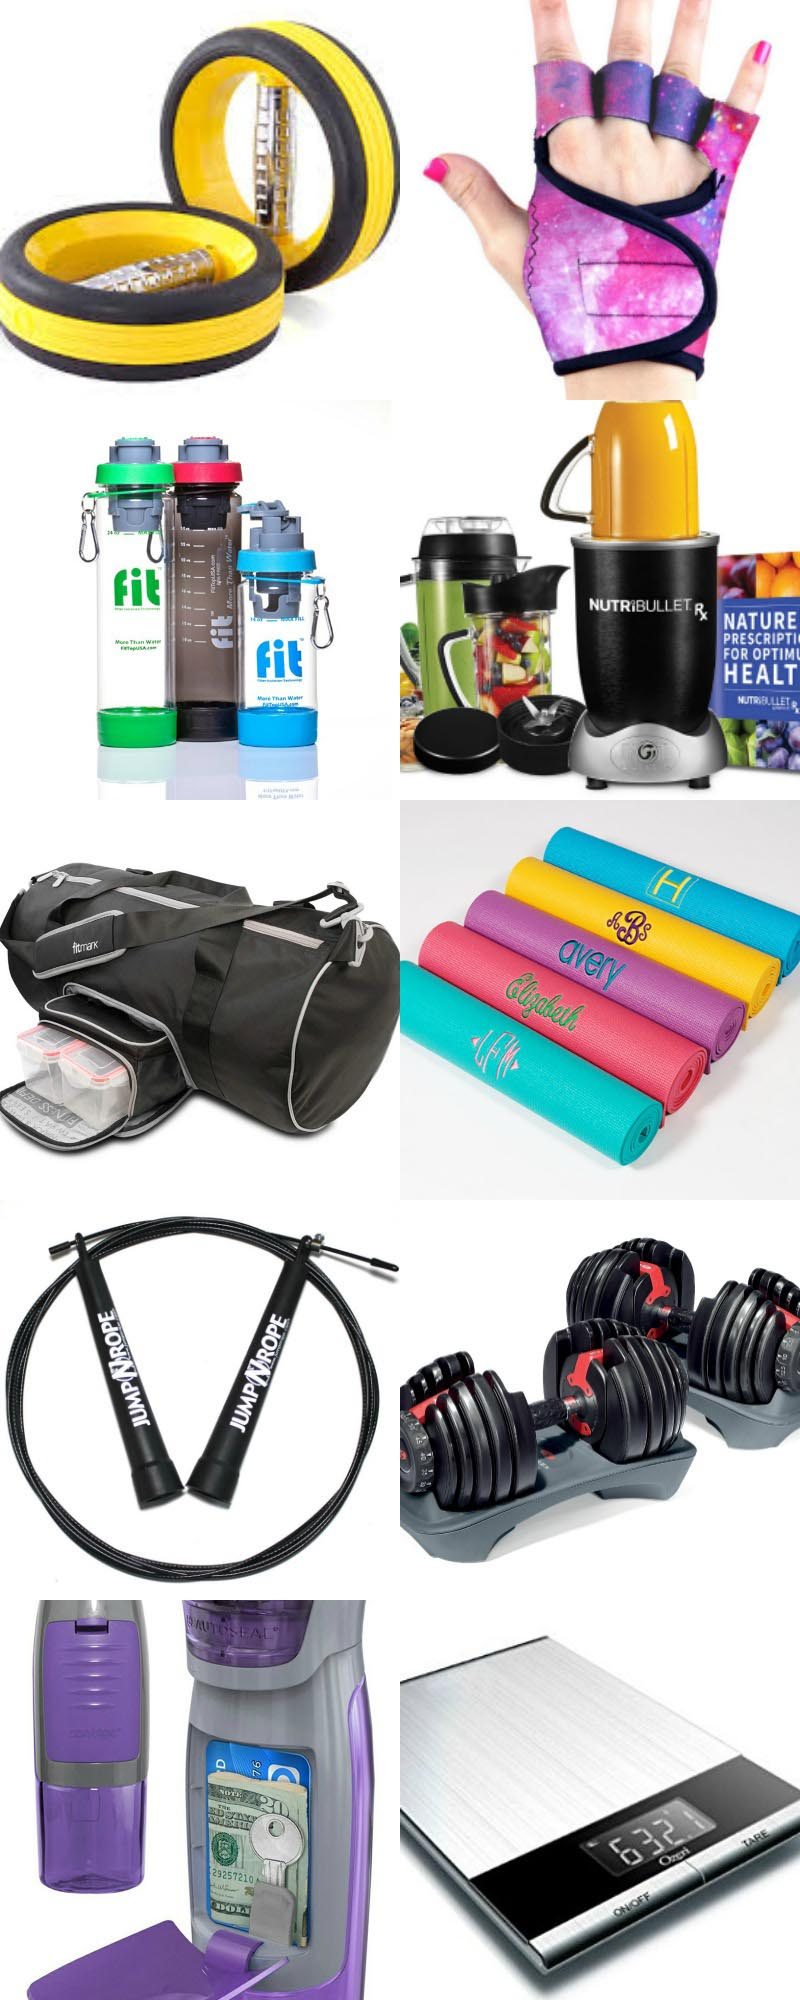 The top 15 Best Fitness Gifts! Cool fitness gadgets, useful equipment, and stylish accessories.